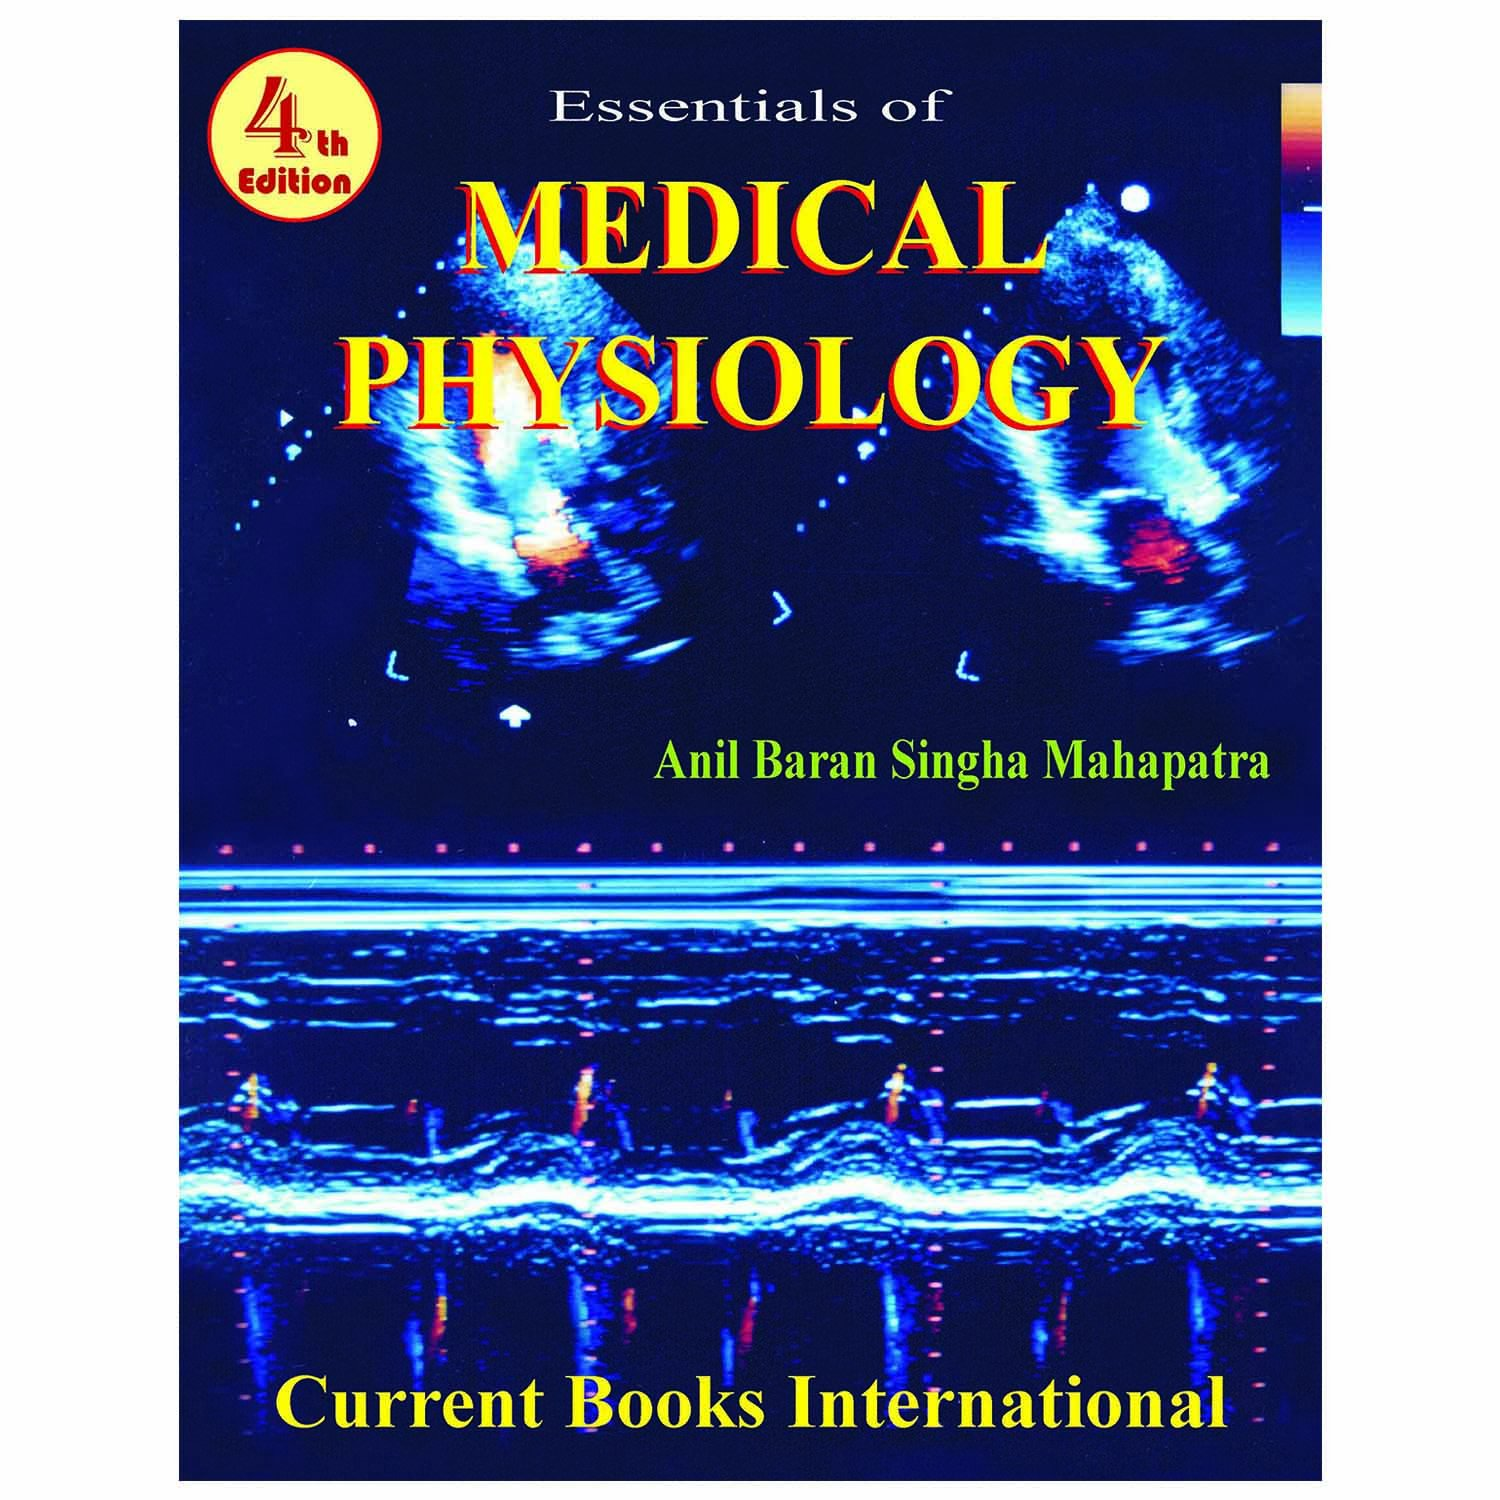 Buy Essentials of Medical Physiology Book Online at Low Prices in ...